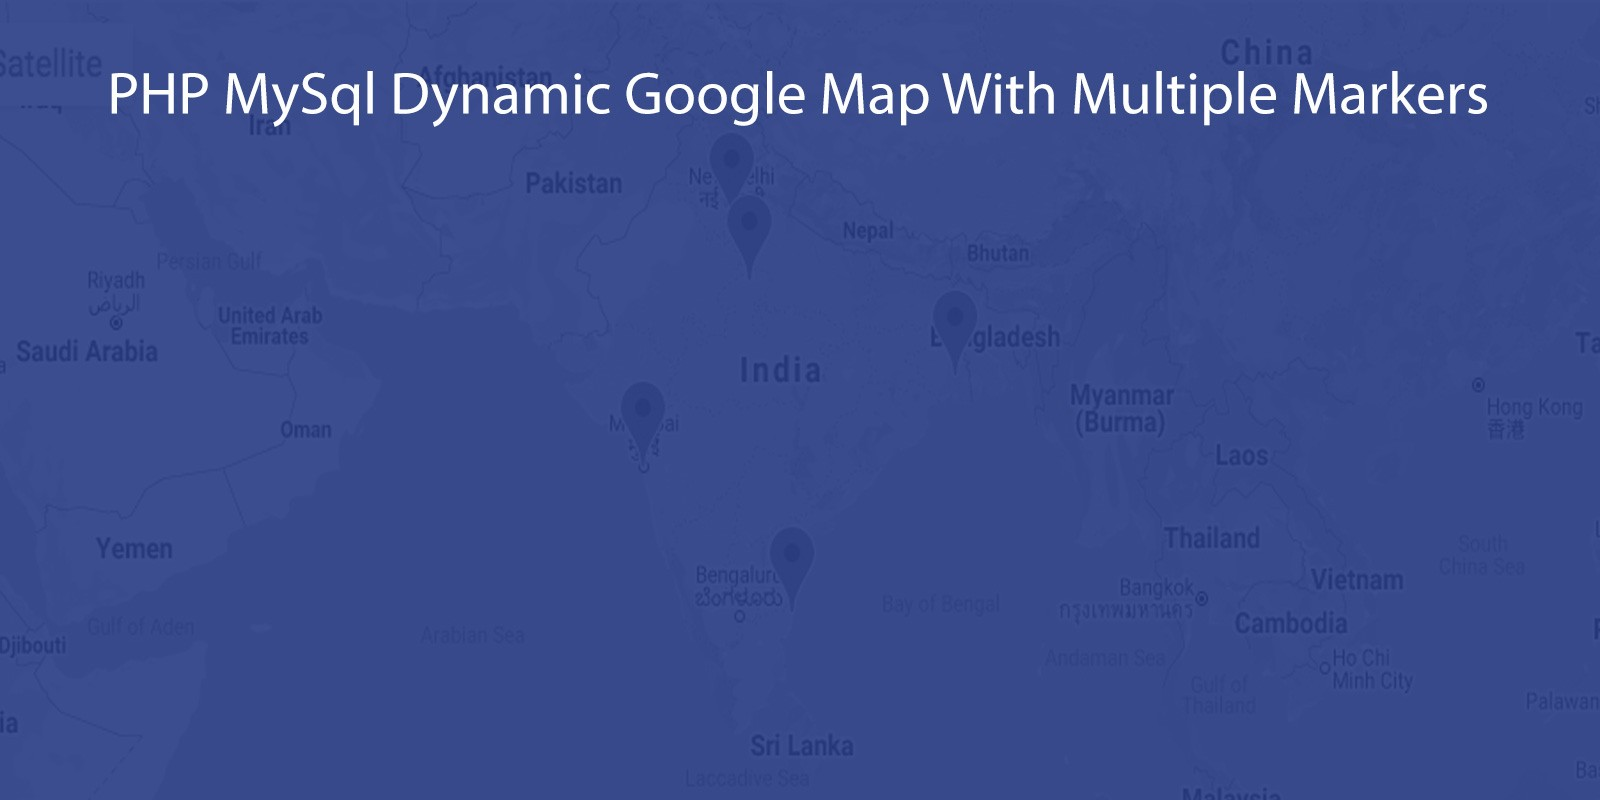 PHP MySql Dynamic Google Map With Multiple Markers